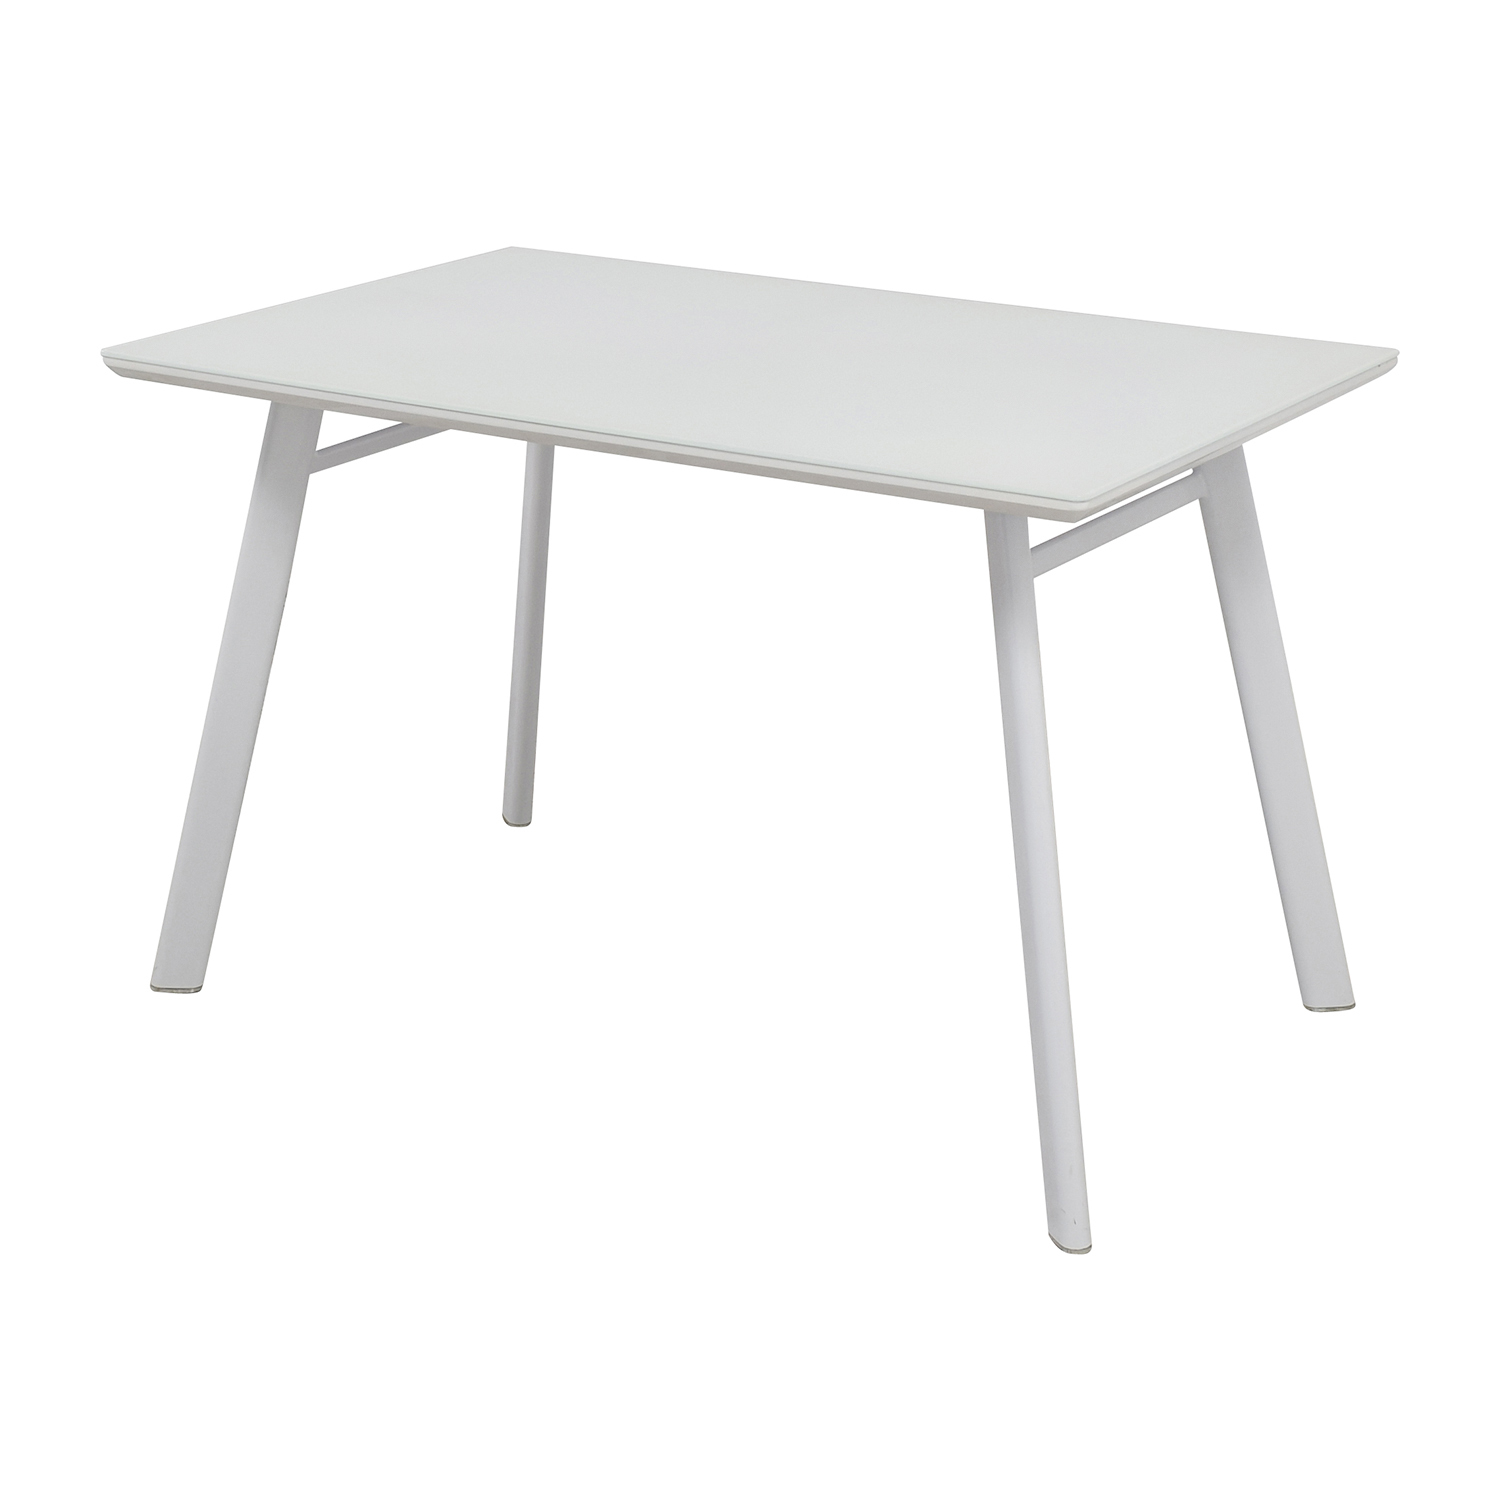 39% OFF J&M J&M Furniture Height Dining Table Tables